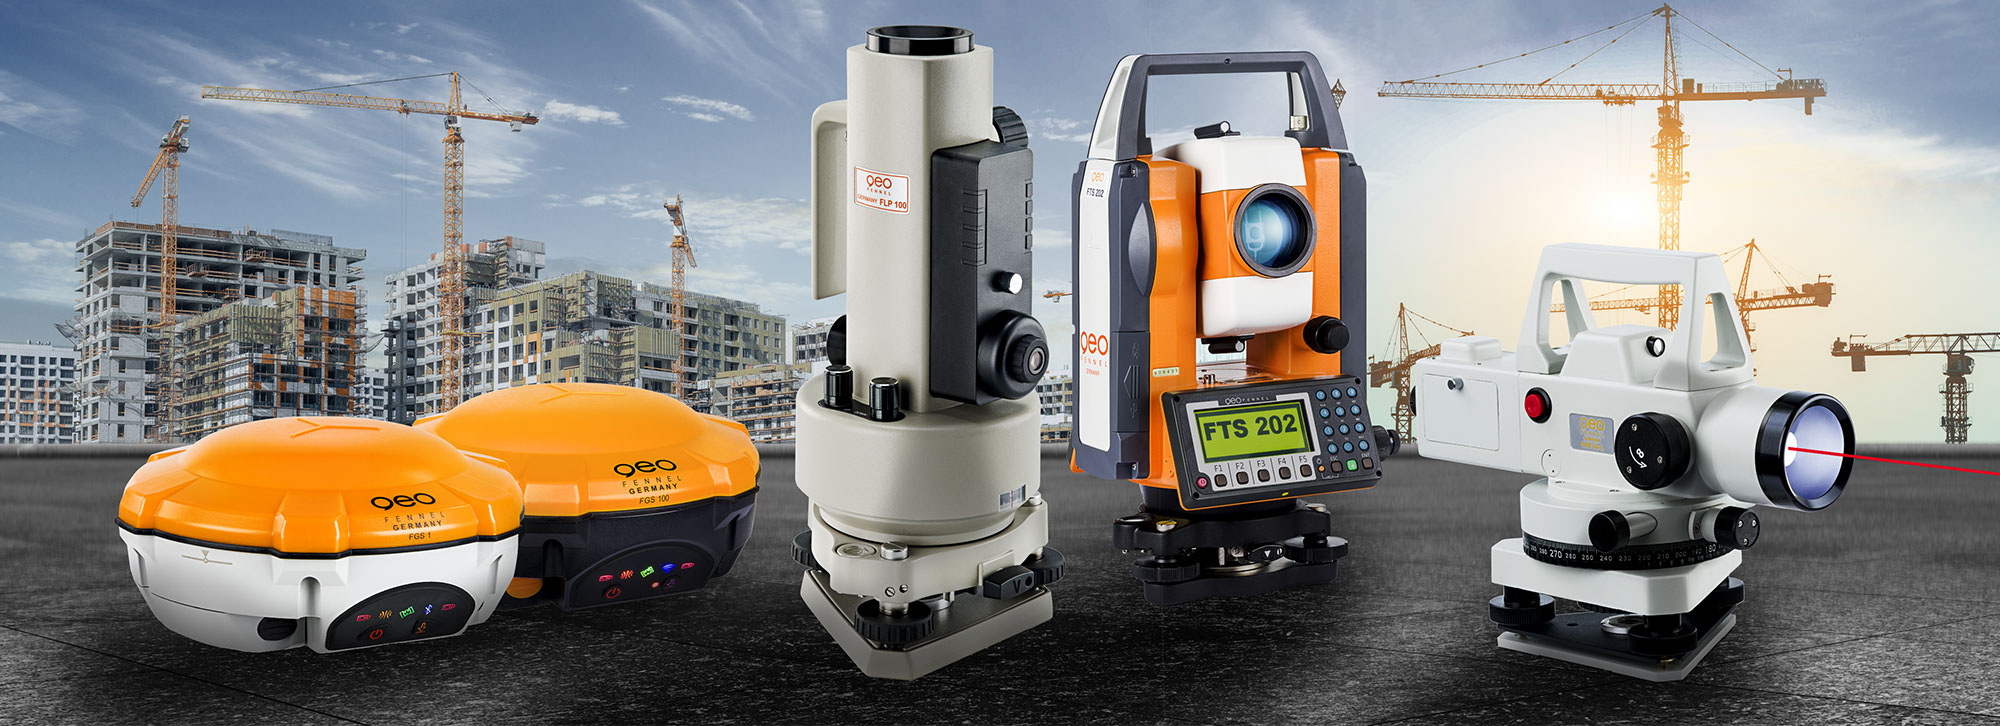 Specialist Measuring Equipment